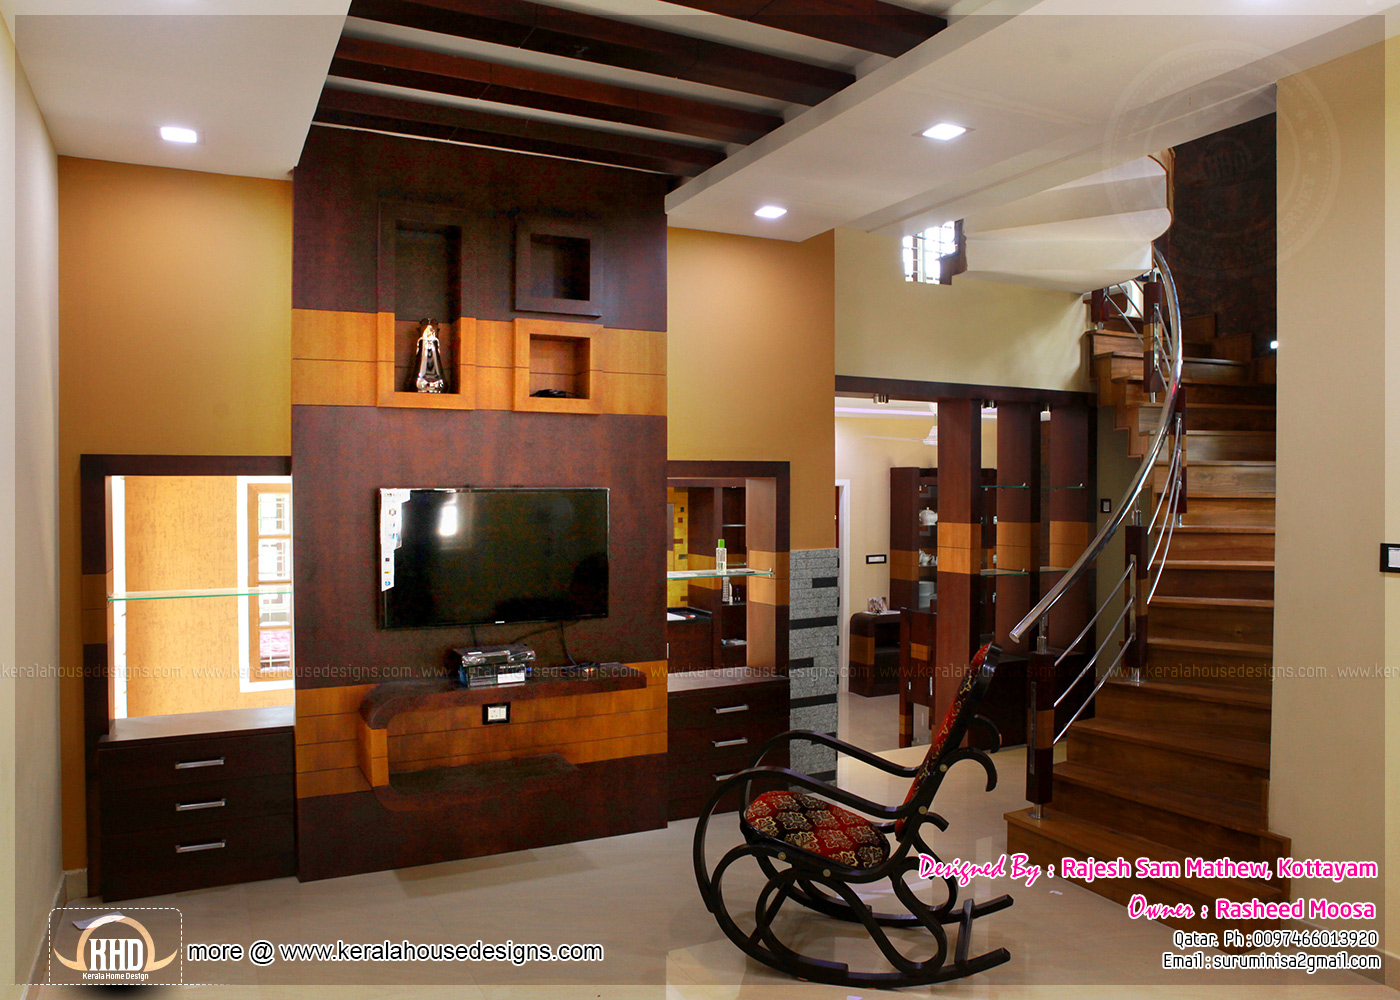 Kerala interior design with photos kerala home design and floor plans - Indian house interior design pictures ...